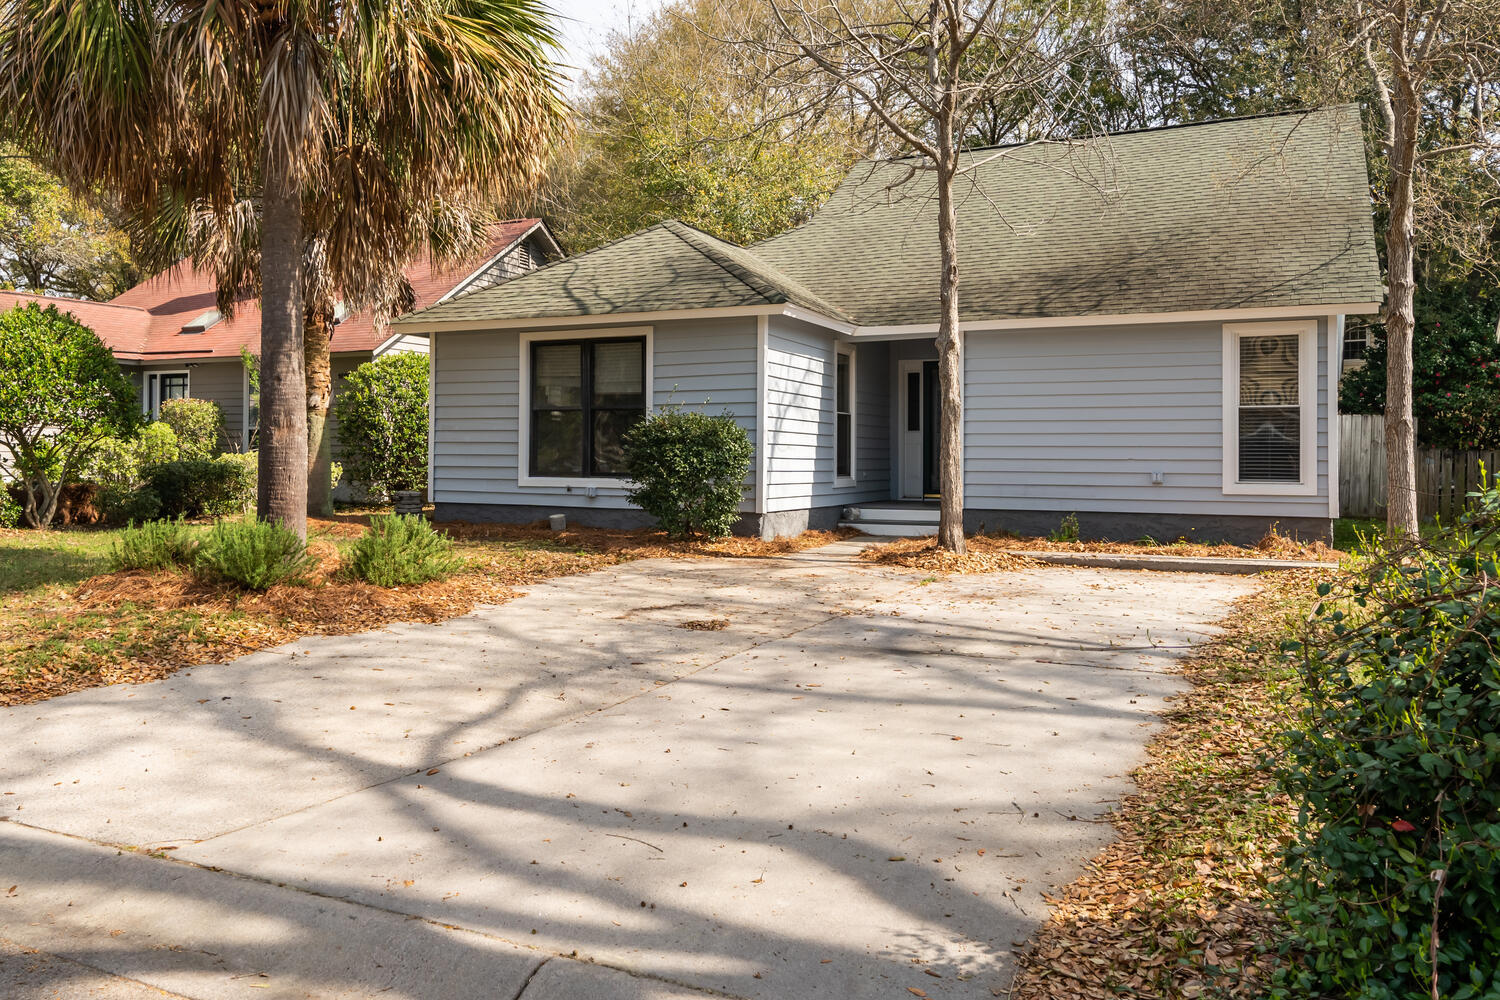 Pirates Cove Homes For Sale - 1510 Privateer, Mount Pleasant, SC - 11